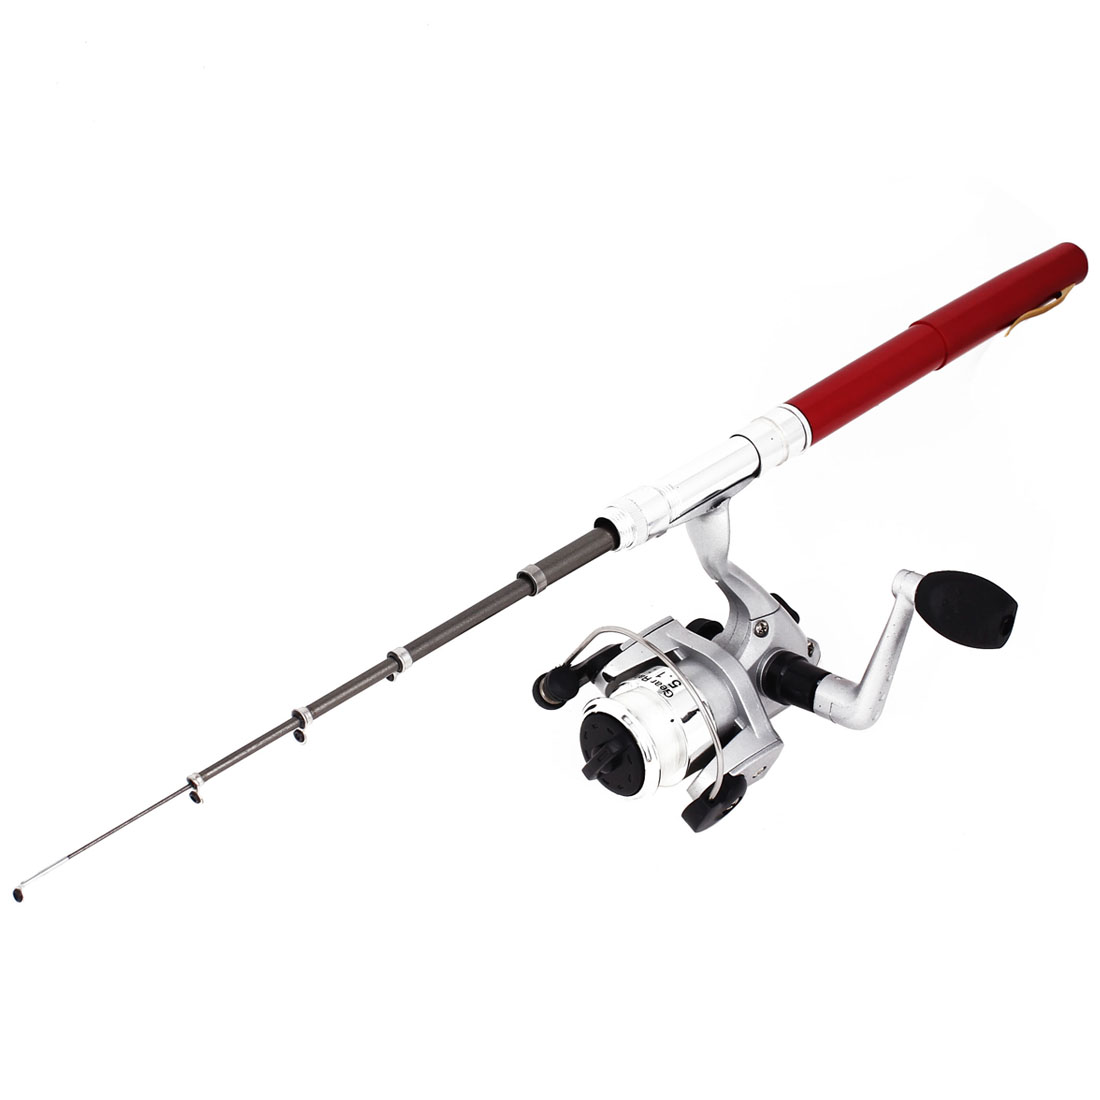 Portable Fish Tackle Red Pen Shape Fishing Rod 100cm Long w Spinning Reel